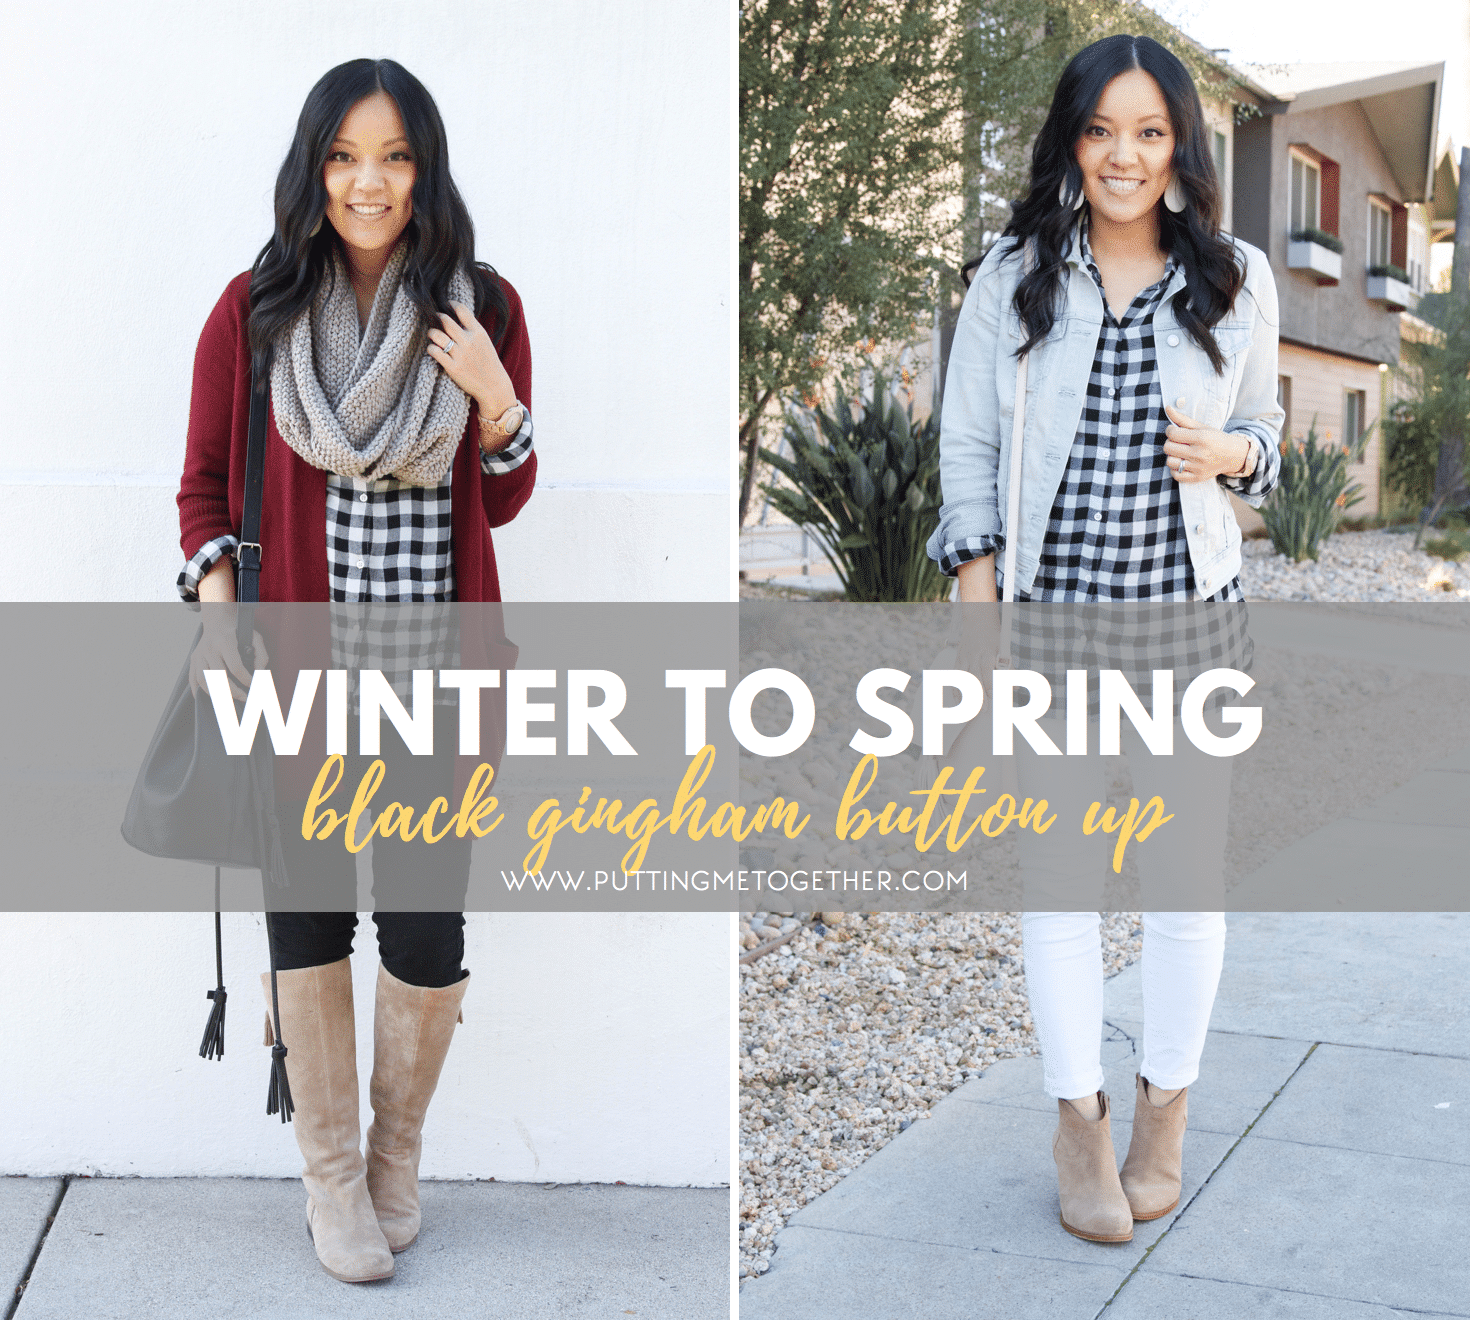 Winter to Spring: Two Outfits With a Black Gingham Button Up